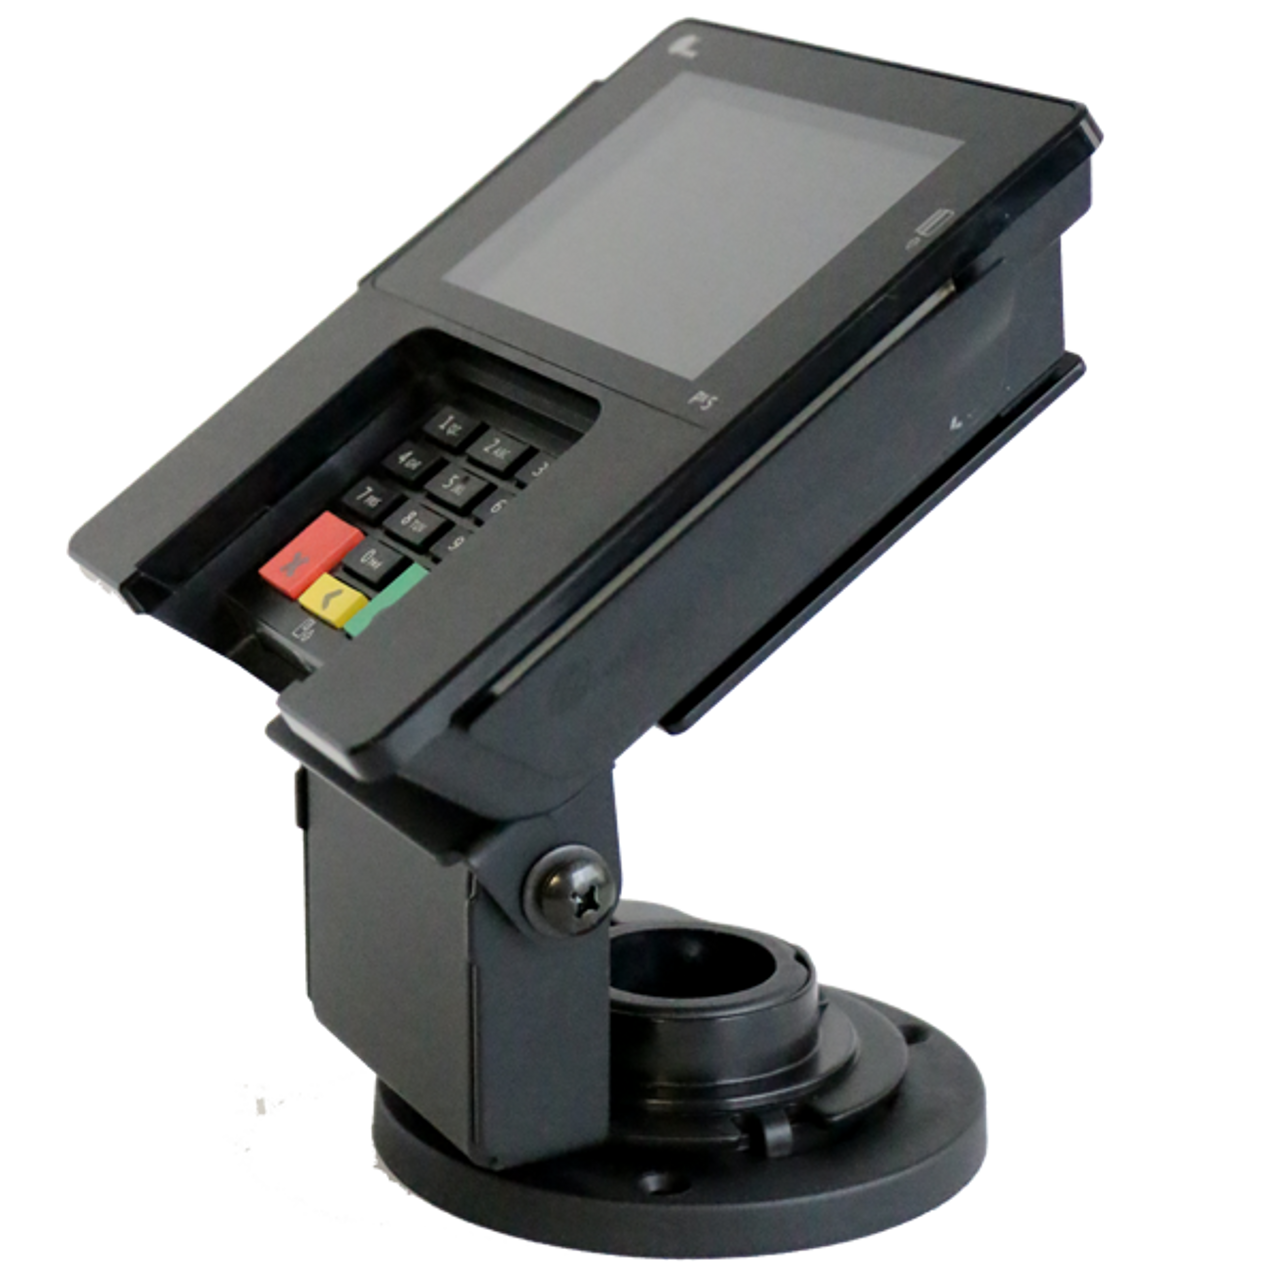 PAX PX5 PX7 Aries6 and Aries8 Credit Card Stand by Swivel Stands